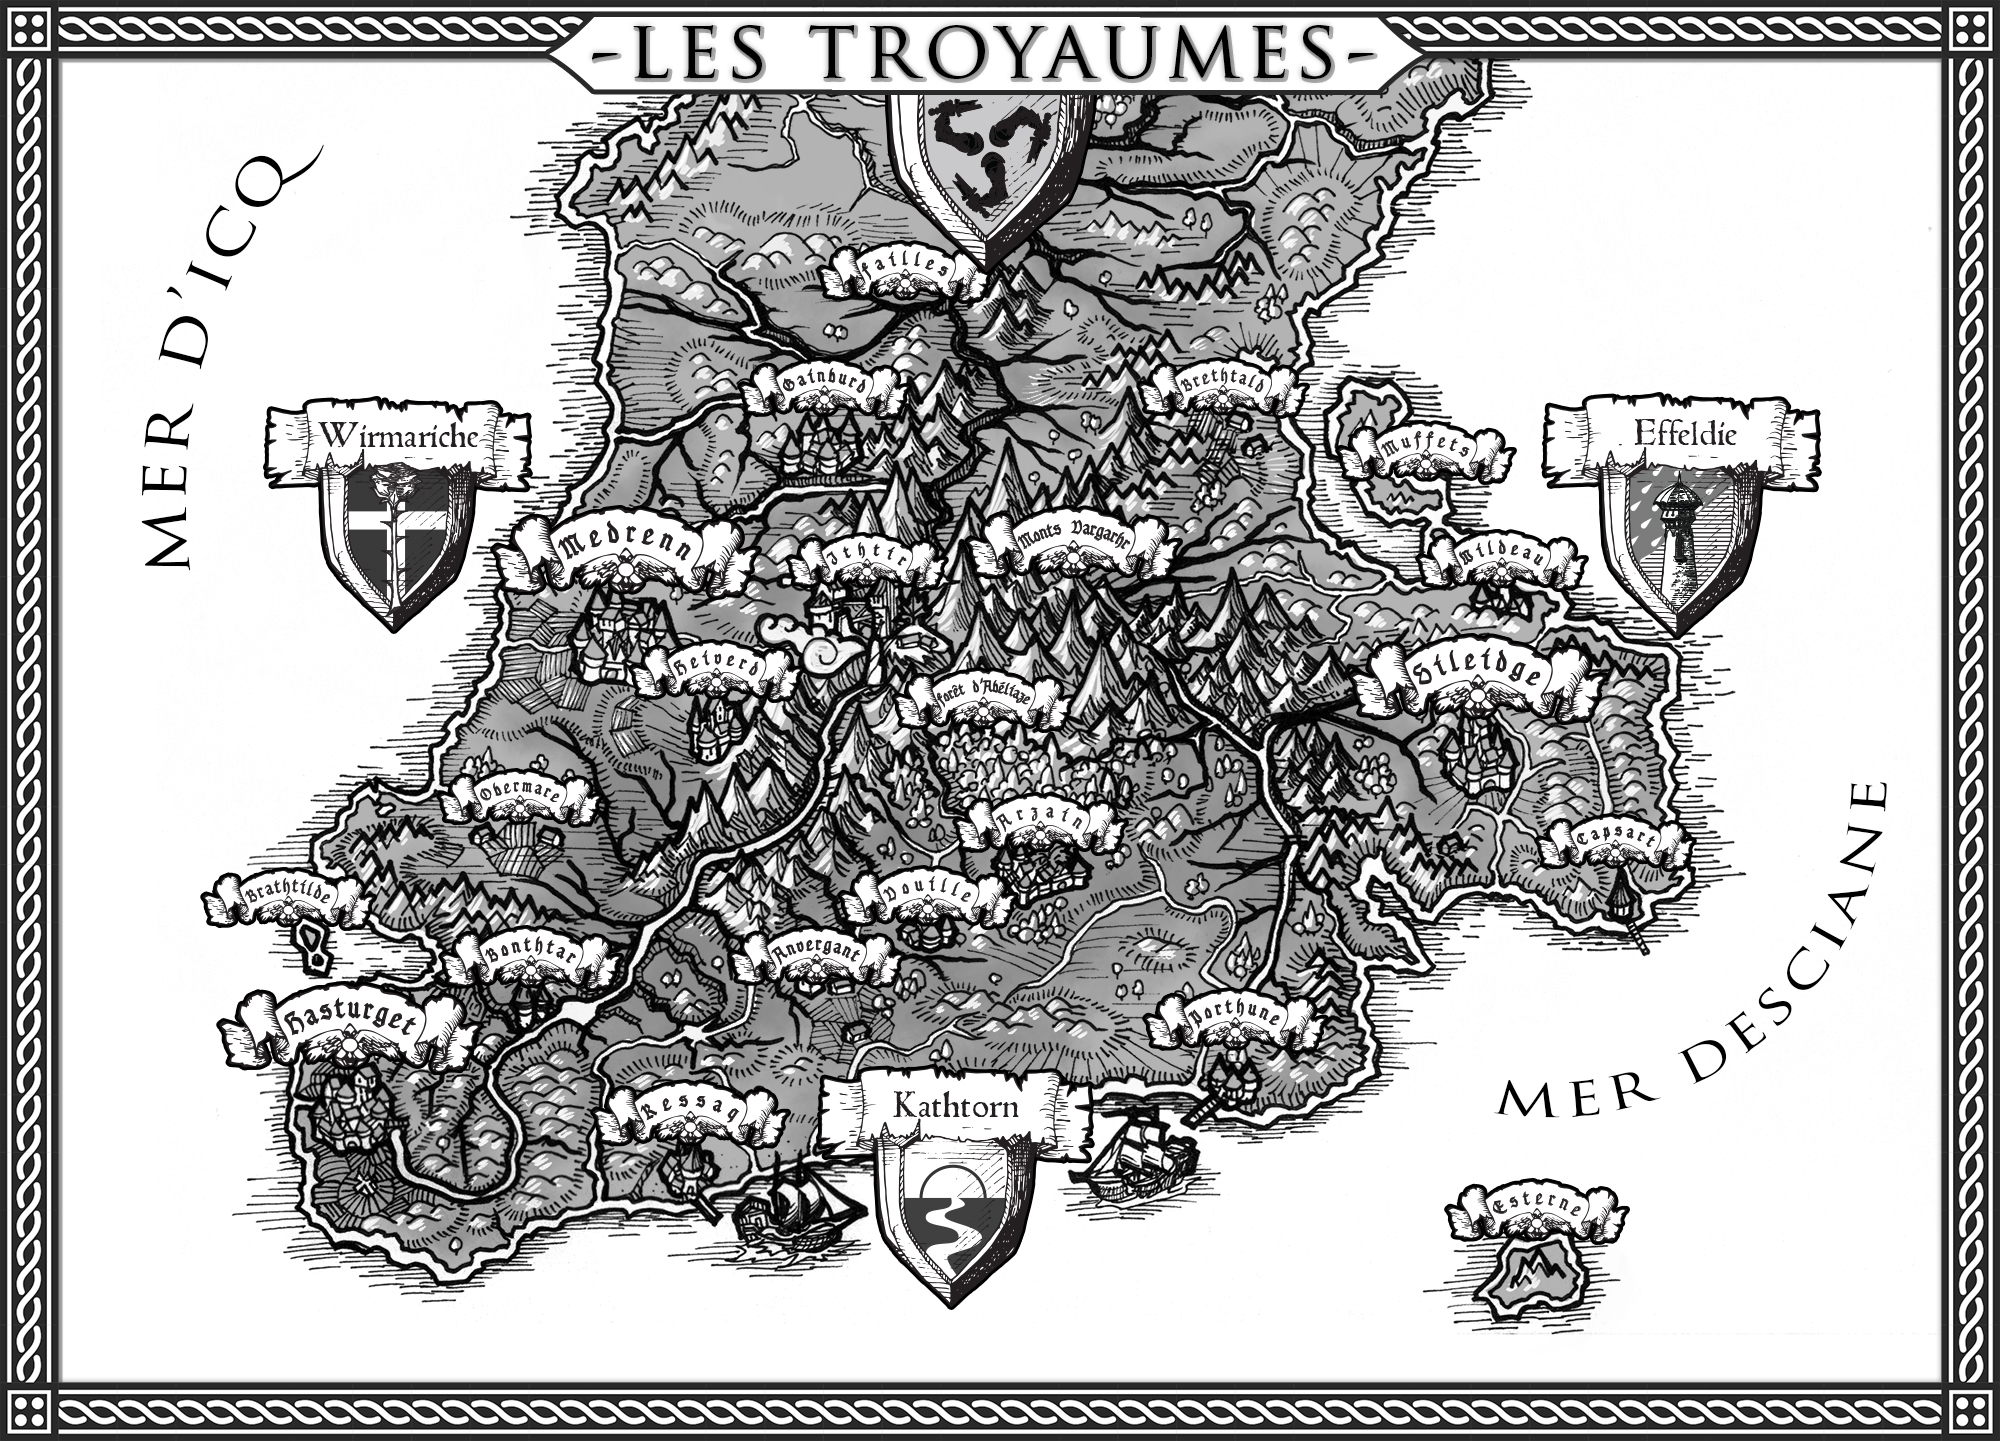 "Greatest and more powerfull countries in Athtora during the saga's era, the kingdoms of Kathtorn, Wirmariche and Effeldia form a triple political entity known as ""Les Troyaumes"" (which could be translated from french as ""the Threalms"" (three-realms))."